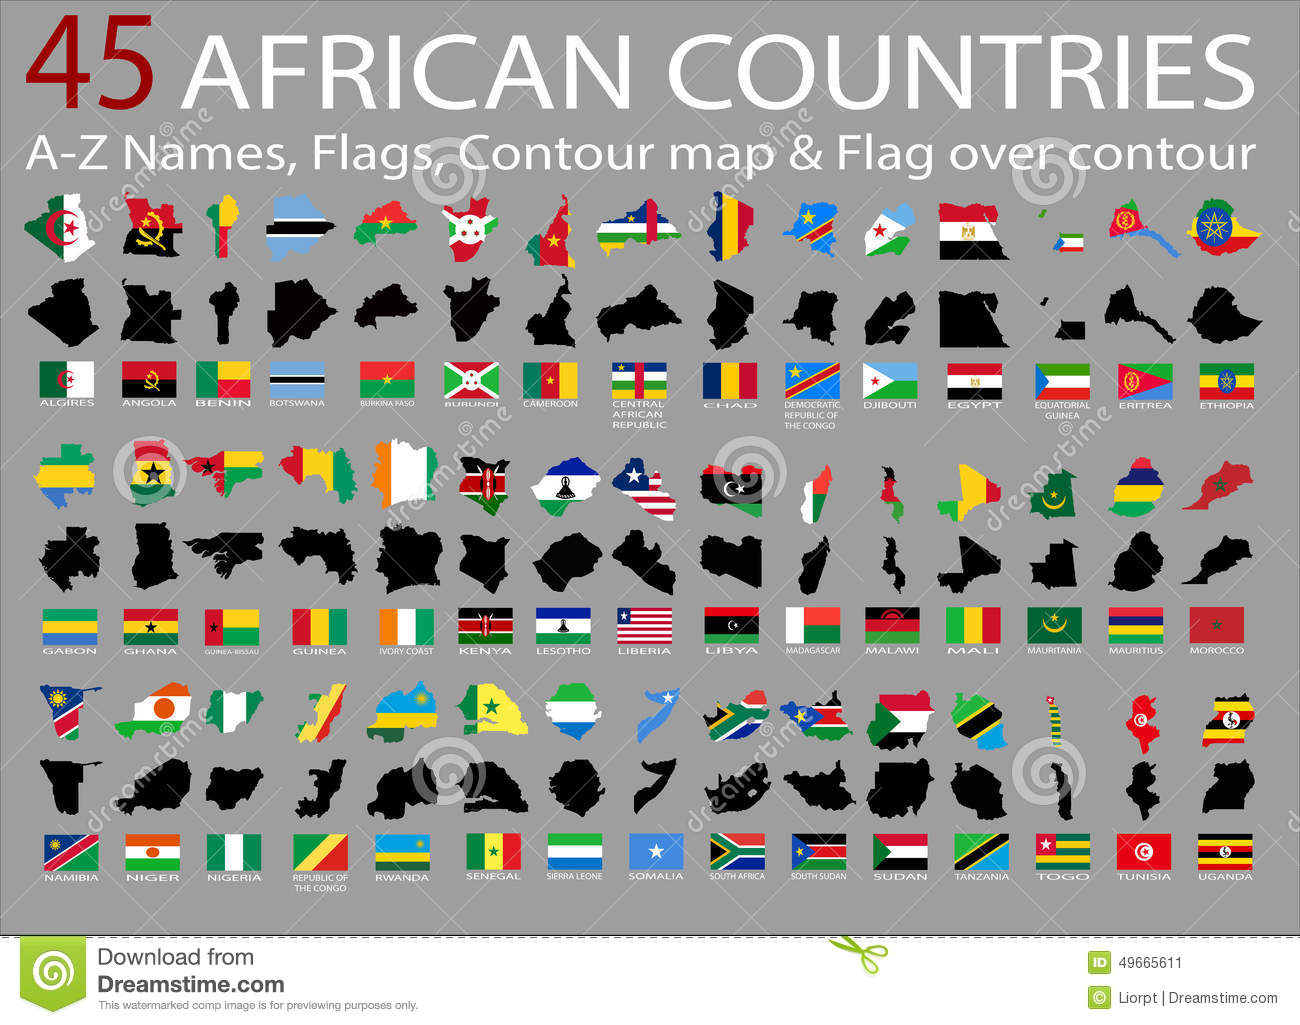 45 african countries a z namesflagscontour and national flag 45 african countries a z namesflagscontour and national flag over contour gumiabroncs Gallery